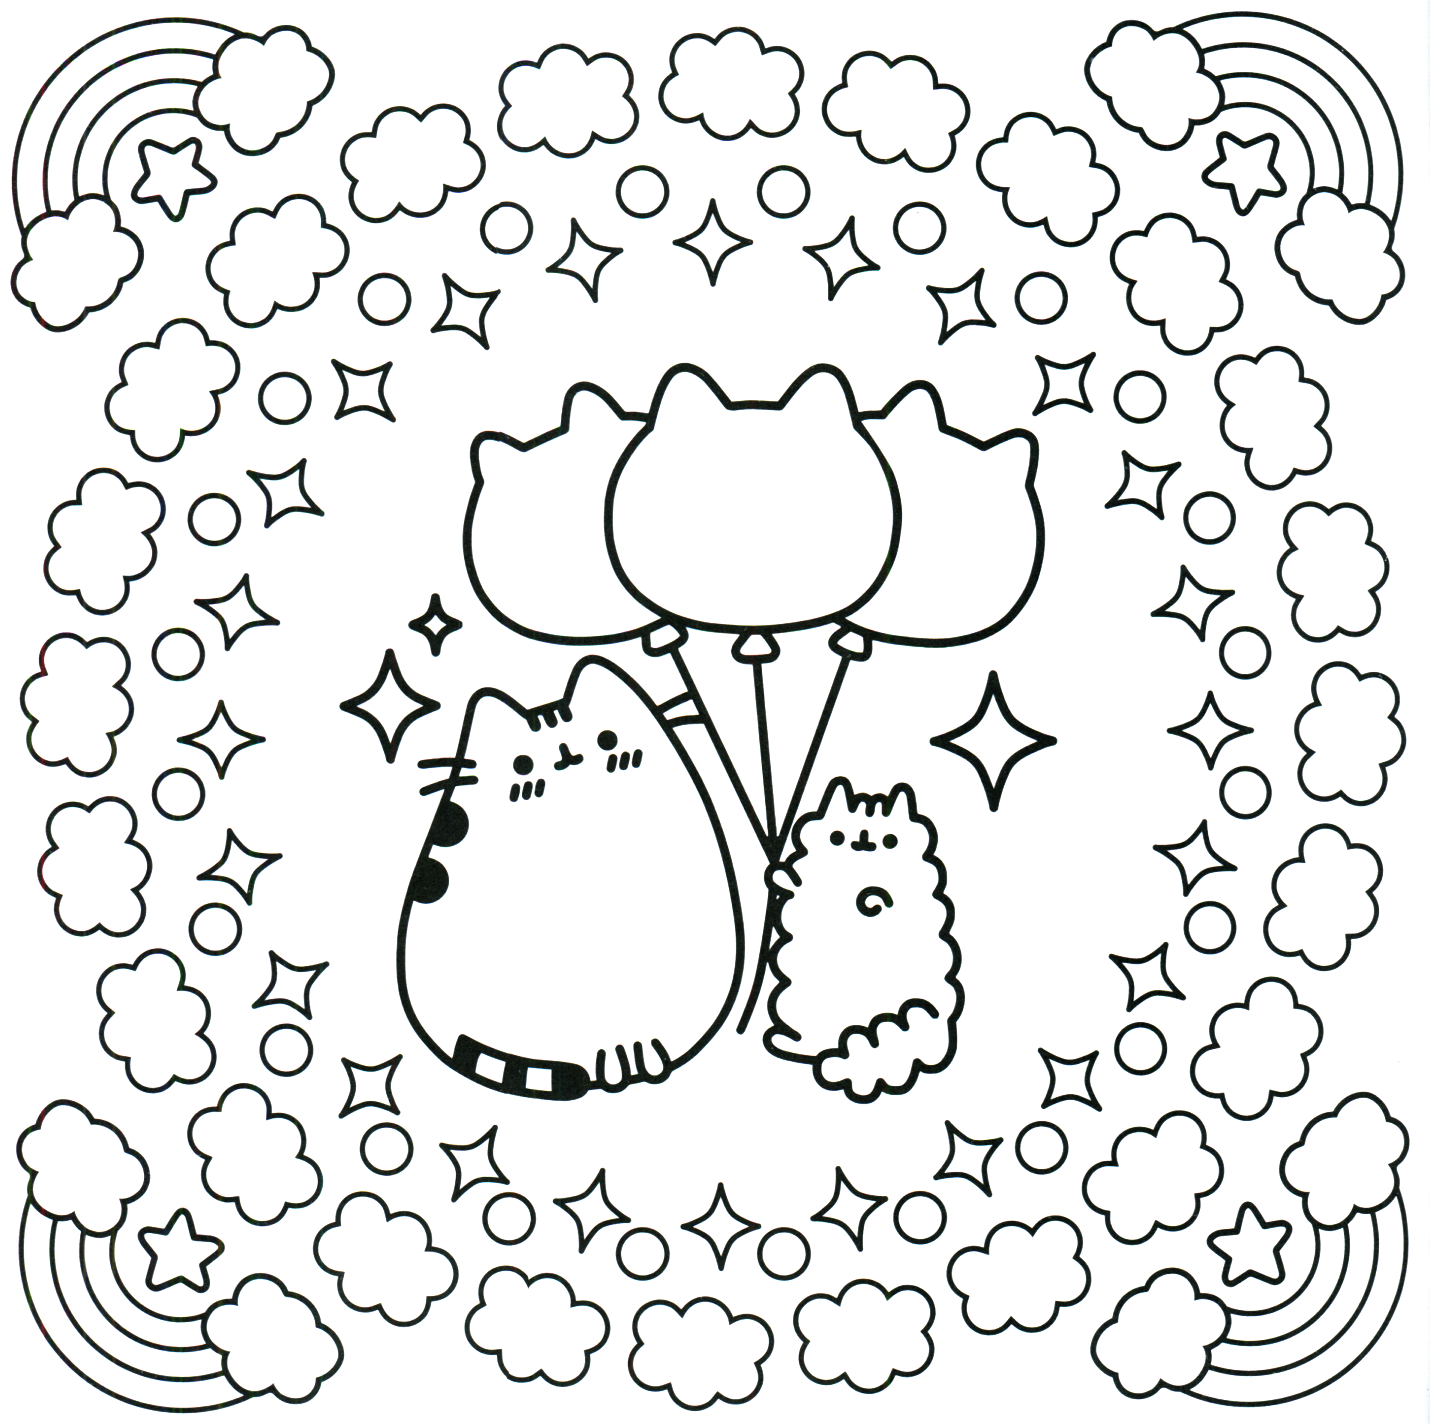 Pusheen coloring pages best coloring pages for kids for Cute coloring book pages